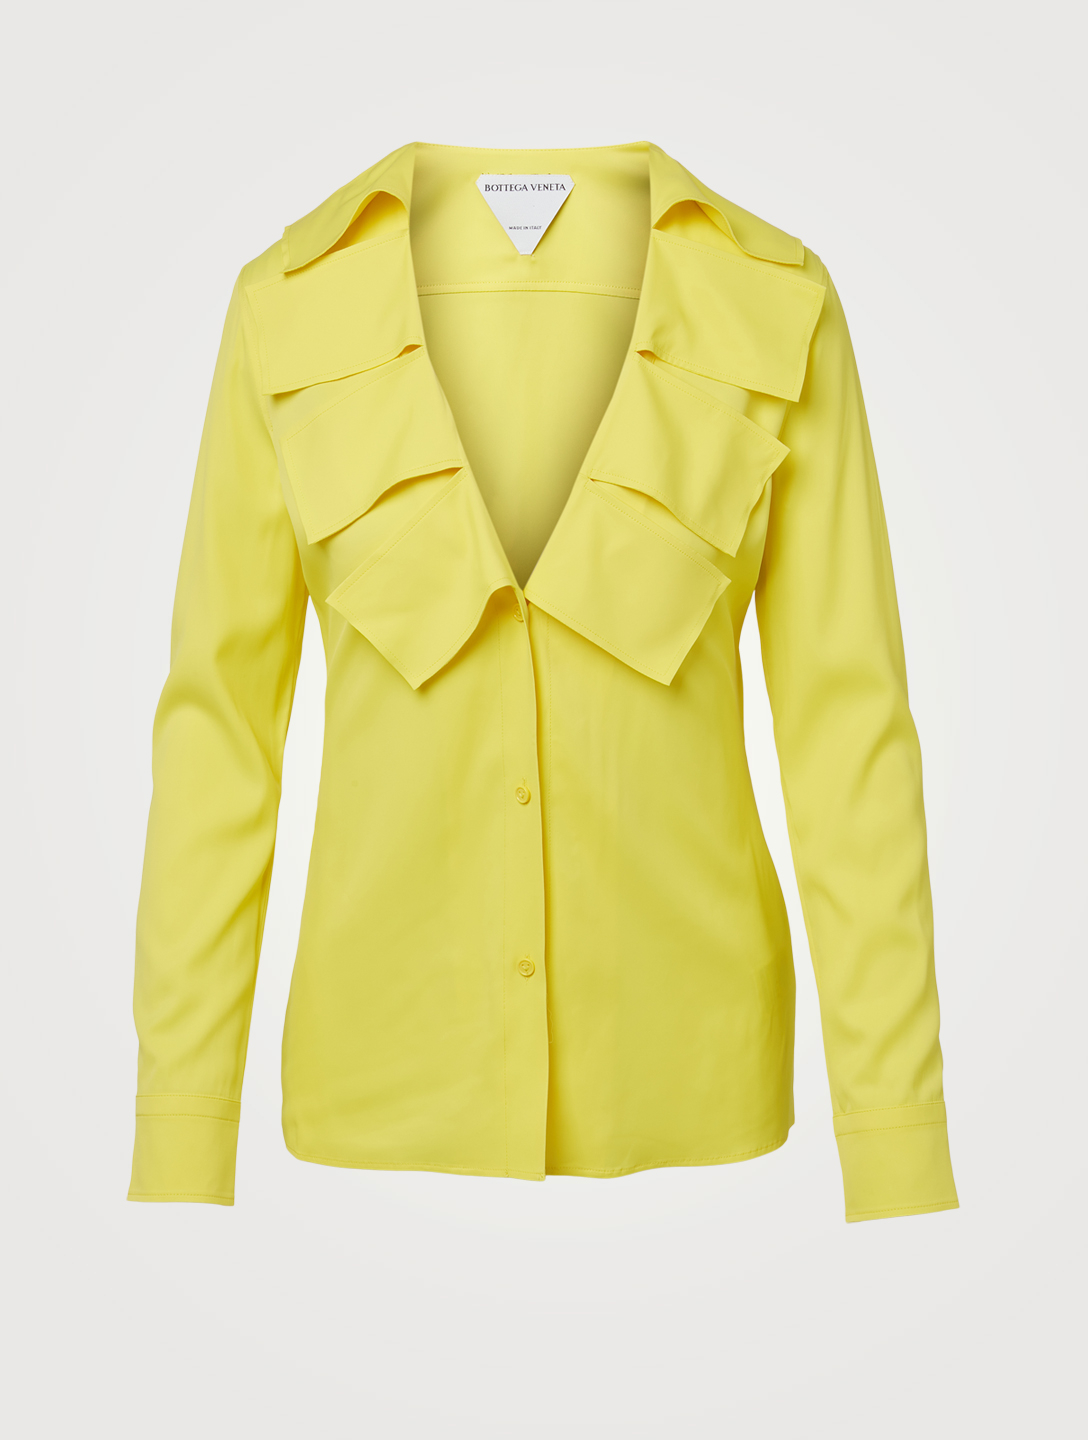 BOTTEGA VENETA V-Neck Blouse With Fringe Women's Yellow